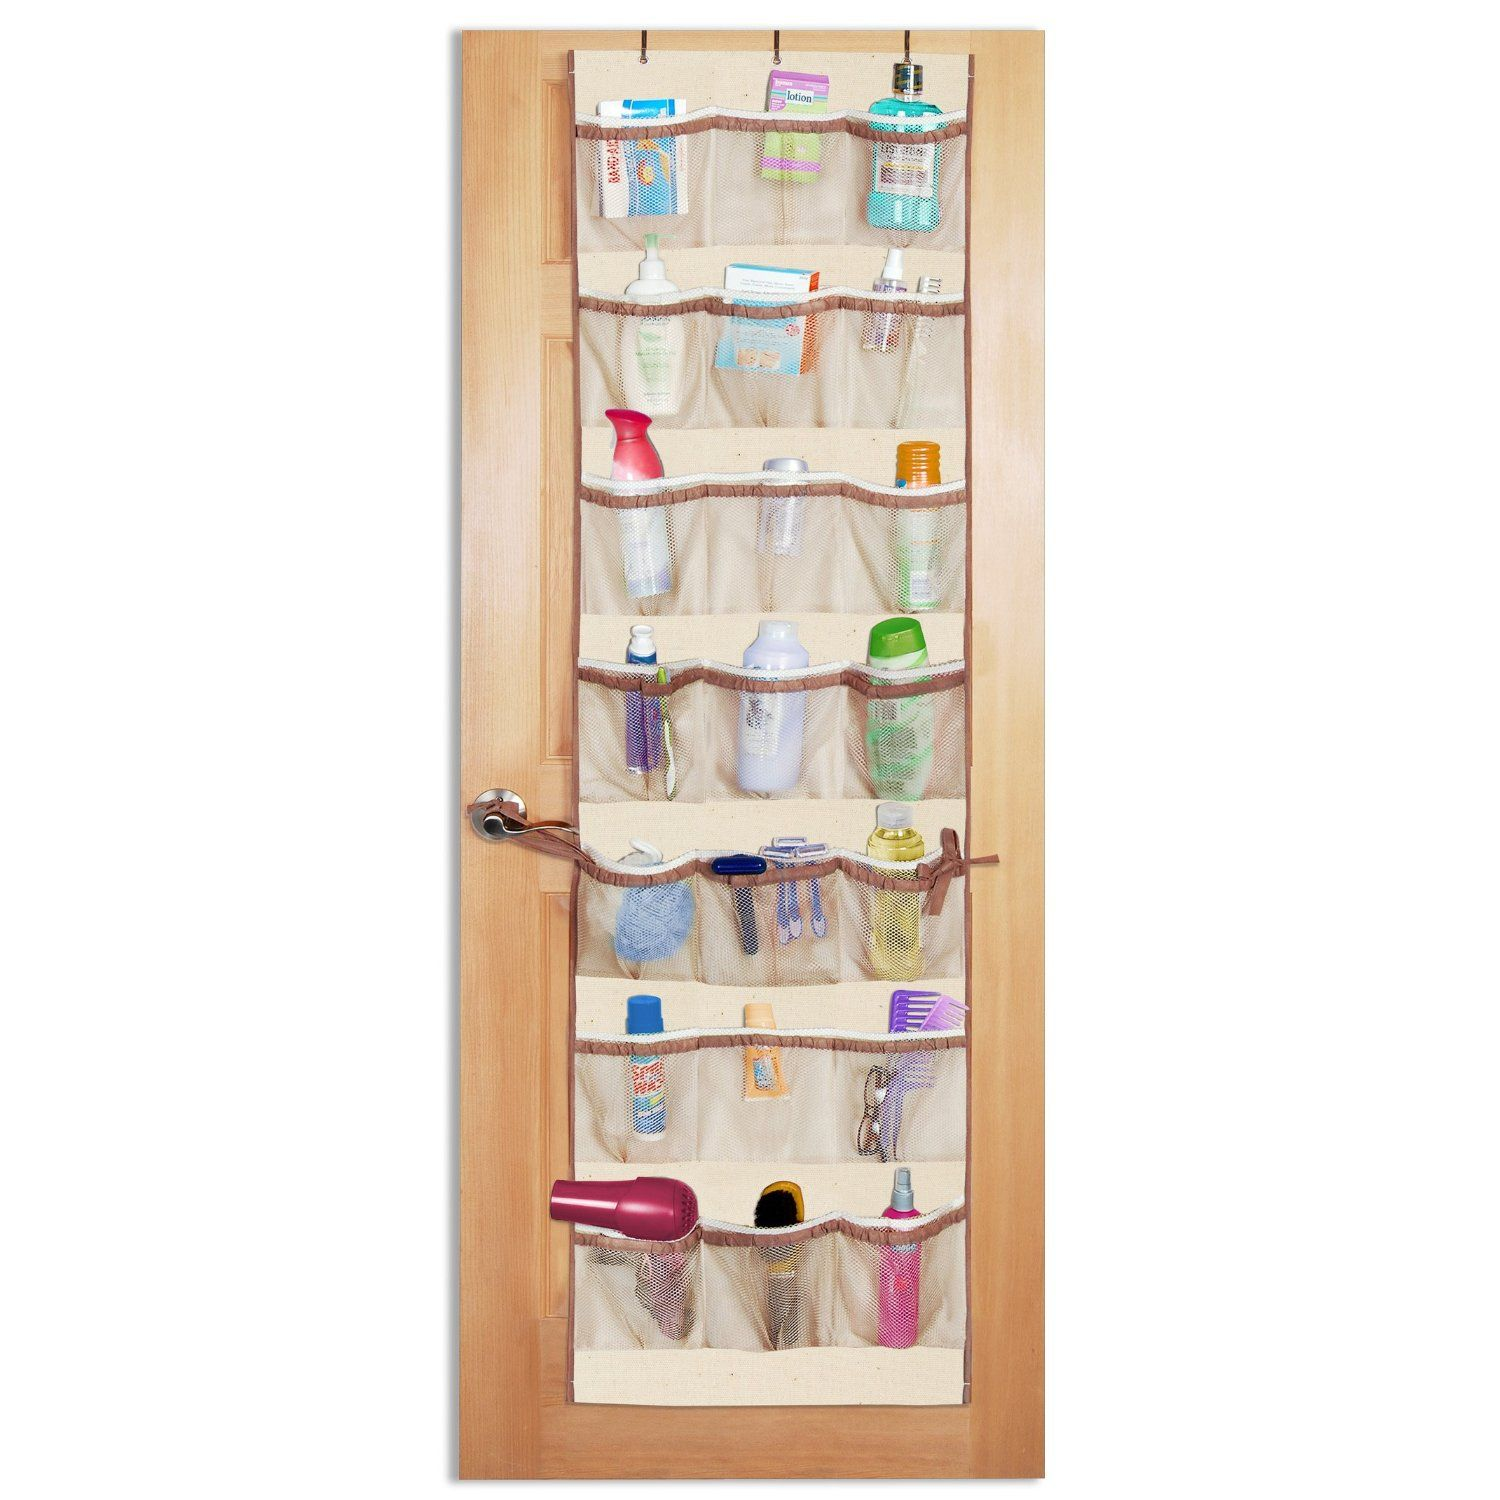 Shoe Organizer For Toiletries In A Small Bathroom Over The Door Organizer Door Organizer Bathroom Cleaning Hacks